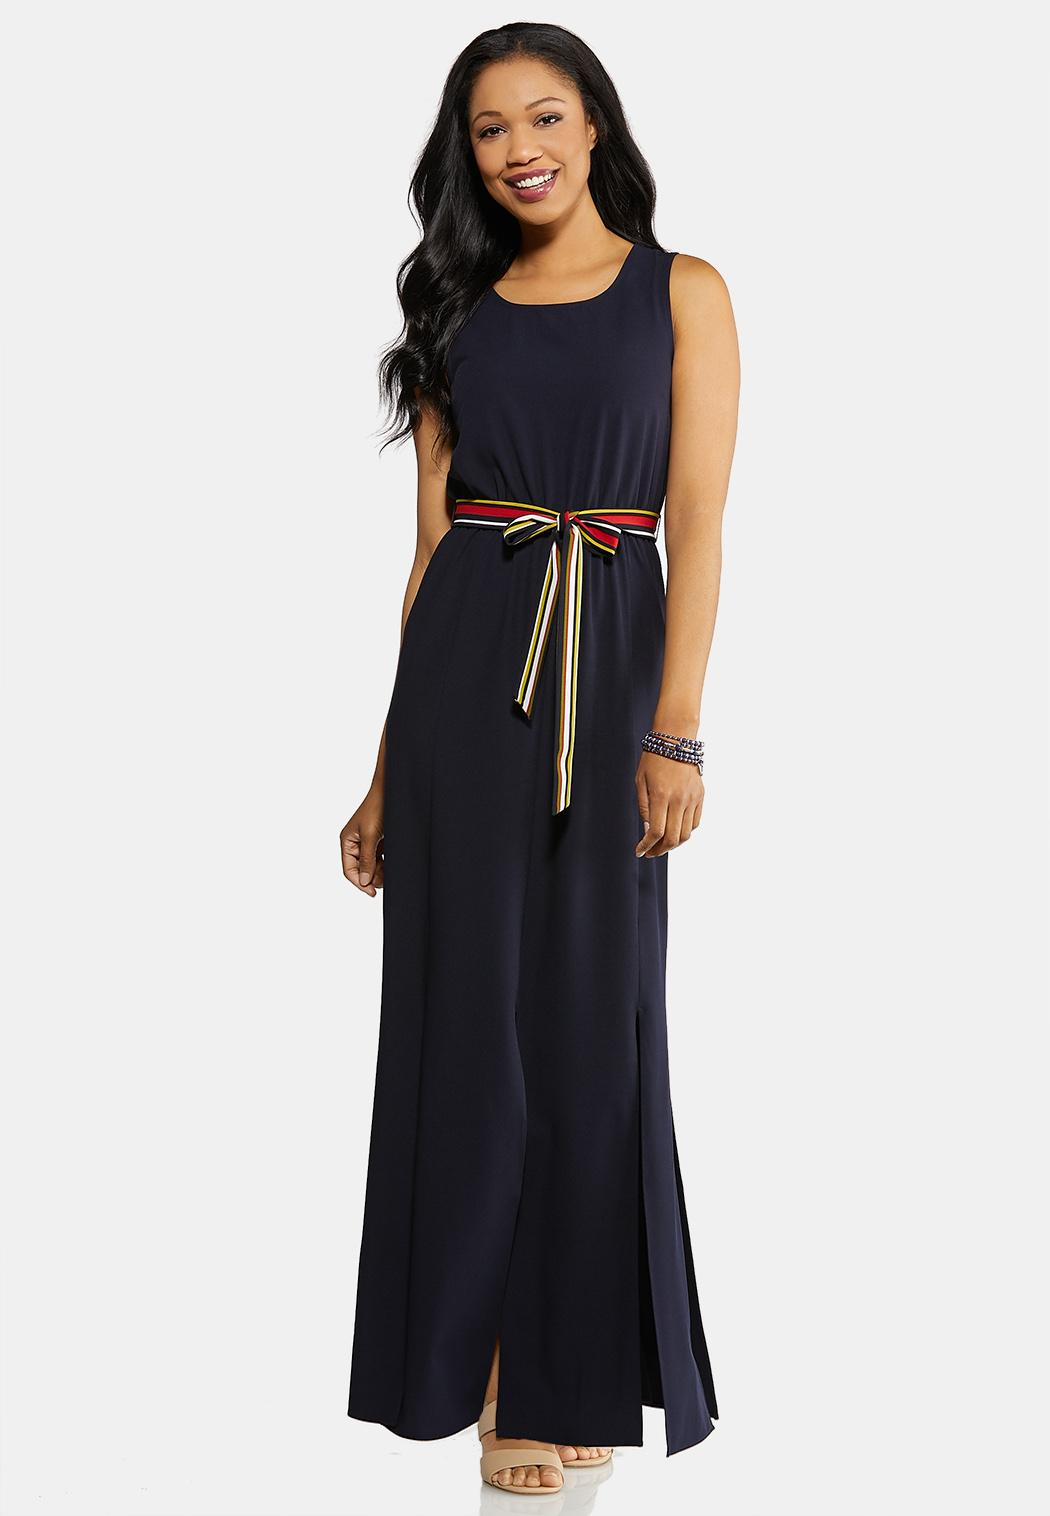 Nautical Navy Belted Maxi Dress